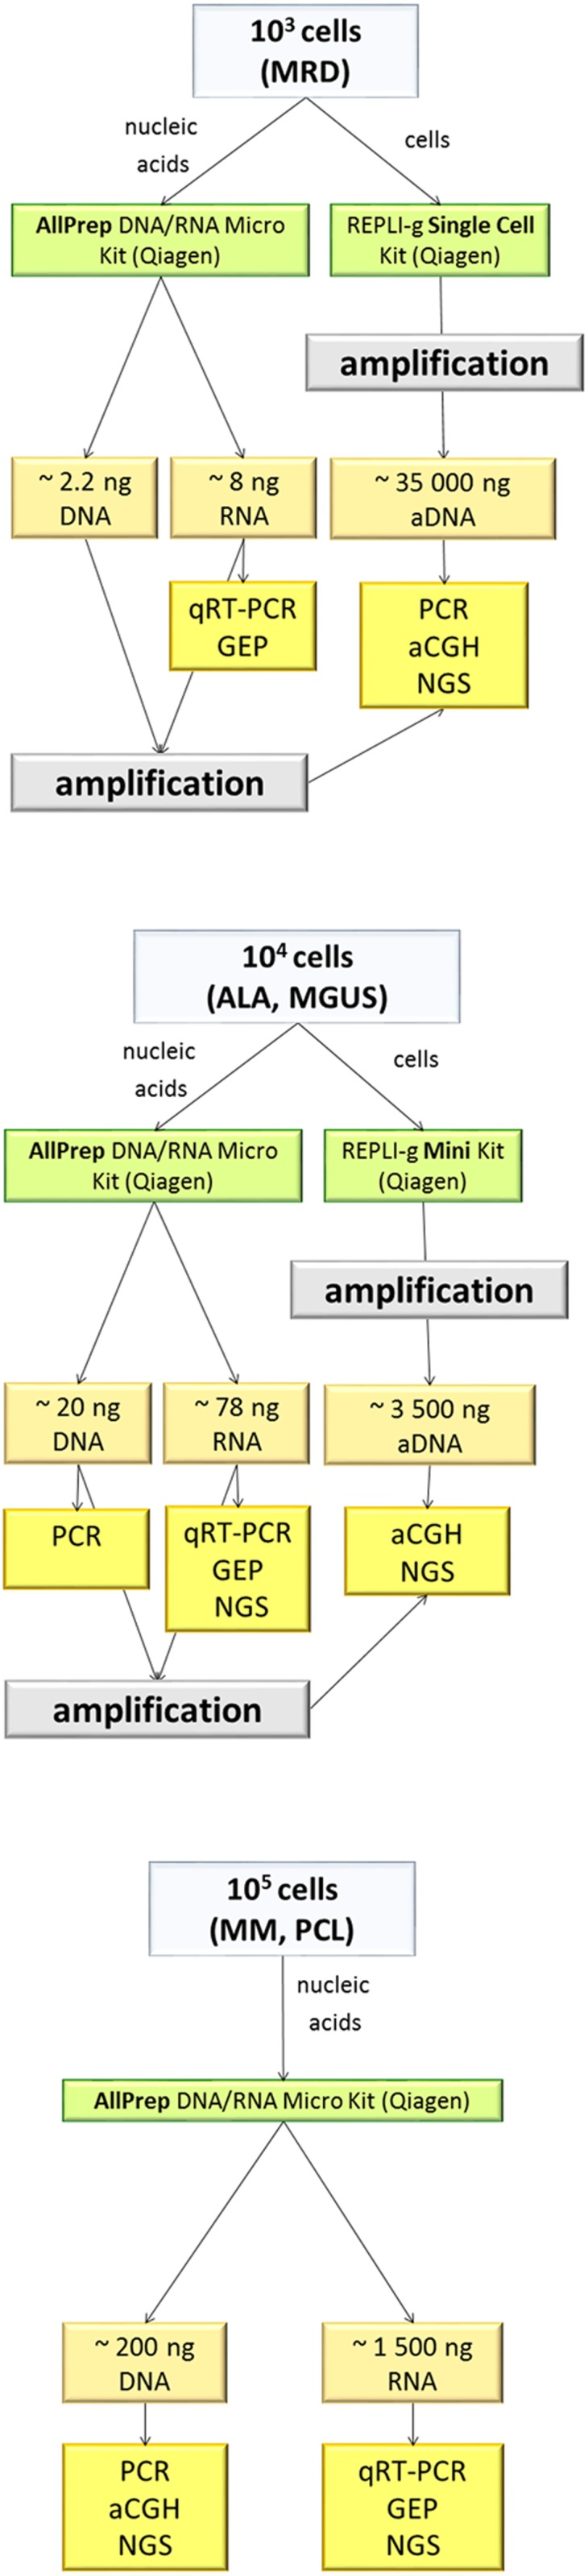 Diagram of preprocessing of samples with small amounts of input material. For a typical number of aberrant cells in various monoclonal gammopathies (MGs), we suggest nucleic acid isolation strategies and expected yield and suitability for downstream applications. For the isolation of nucleic acids with ≤10 5 cells, the most efficient isolation kit was the AllPrep DNA/RNA Micro Kit. For less starting material or for improved DNA yield for next generation sequencing (NGS), amplification by REPLI-g Single Cell of REPLI-g Mini Kit is recommended. aDNA, amplified genomic DNA; ALA, light chain amyloidosis; CGH, comparative genomic hybridisation; MGUS, monoclonal gammopathy of undetermined significance; MM, multiple myeloma; MRD, minimal residual disease; PCL, plasma cell leukaemia.